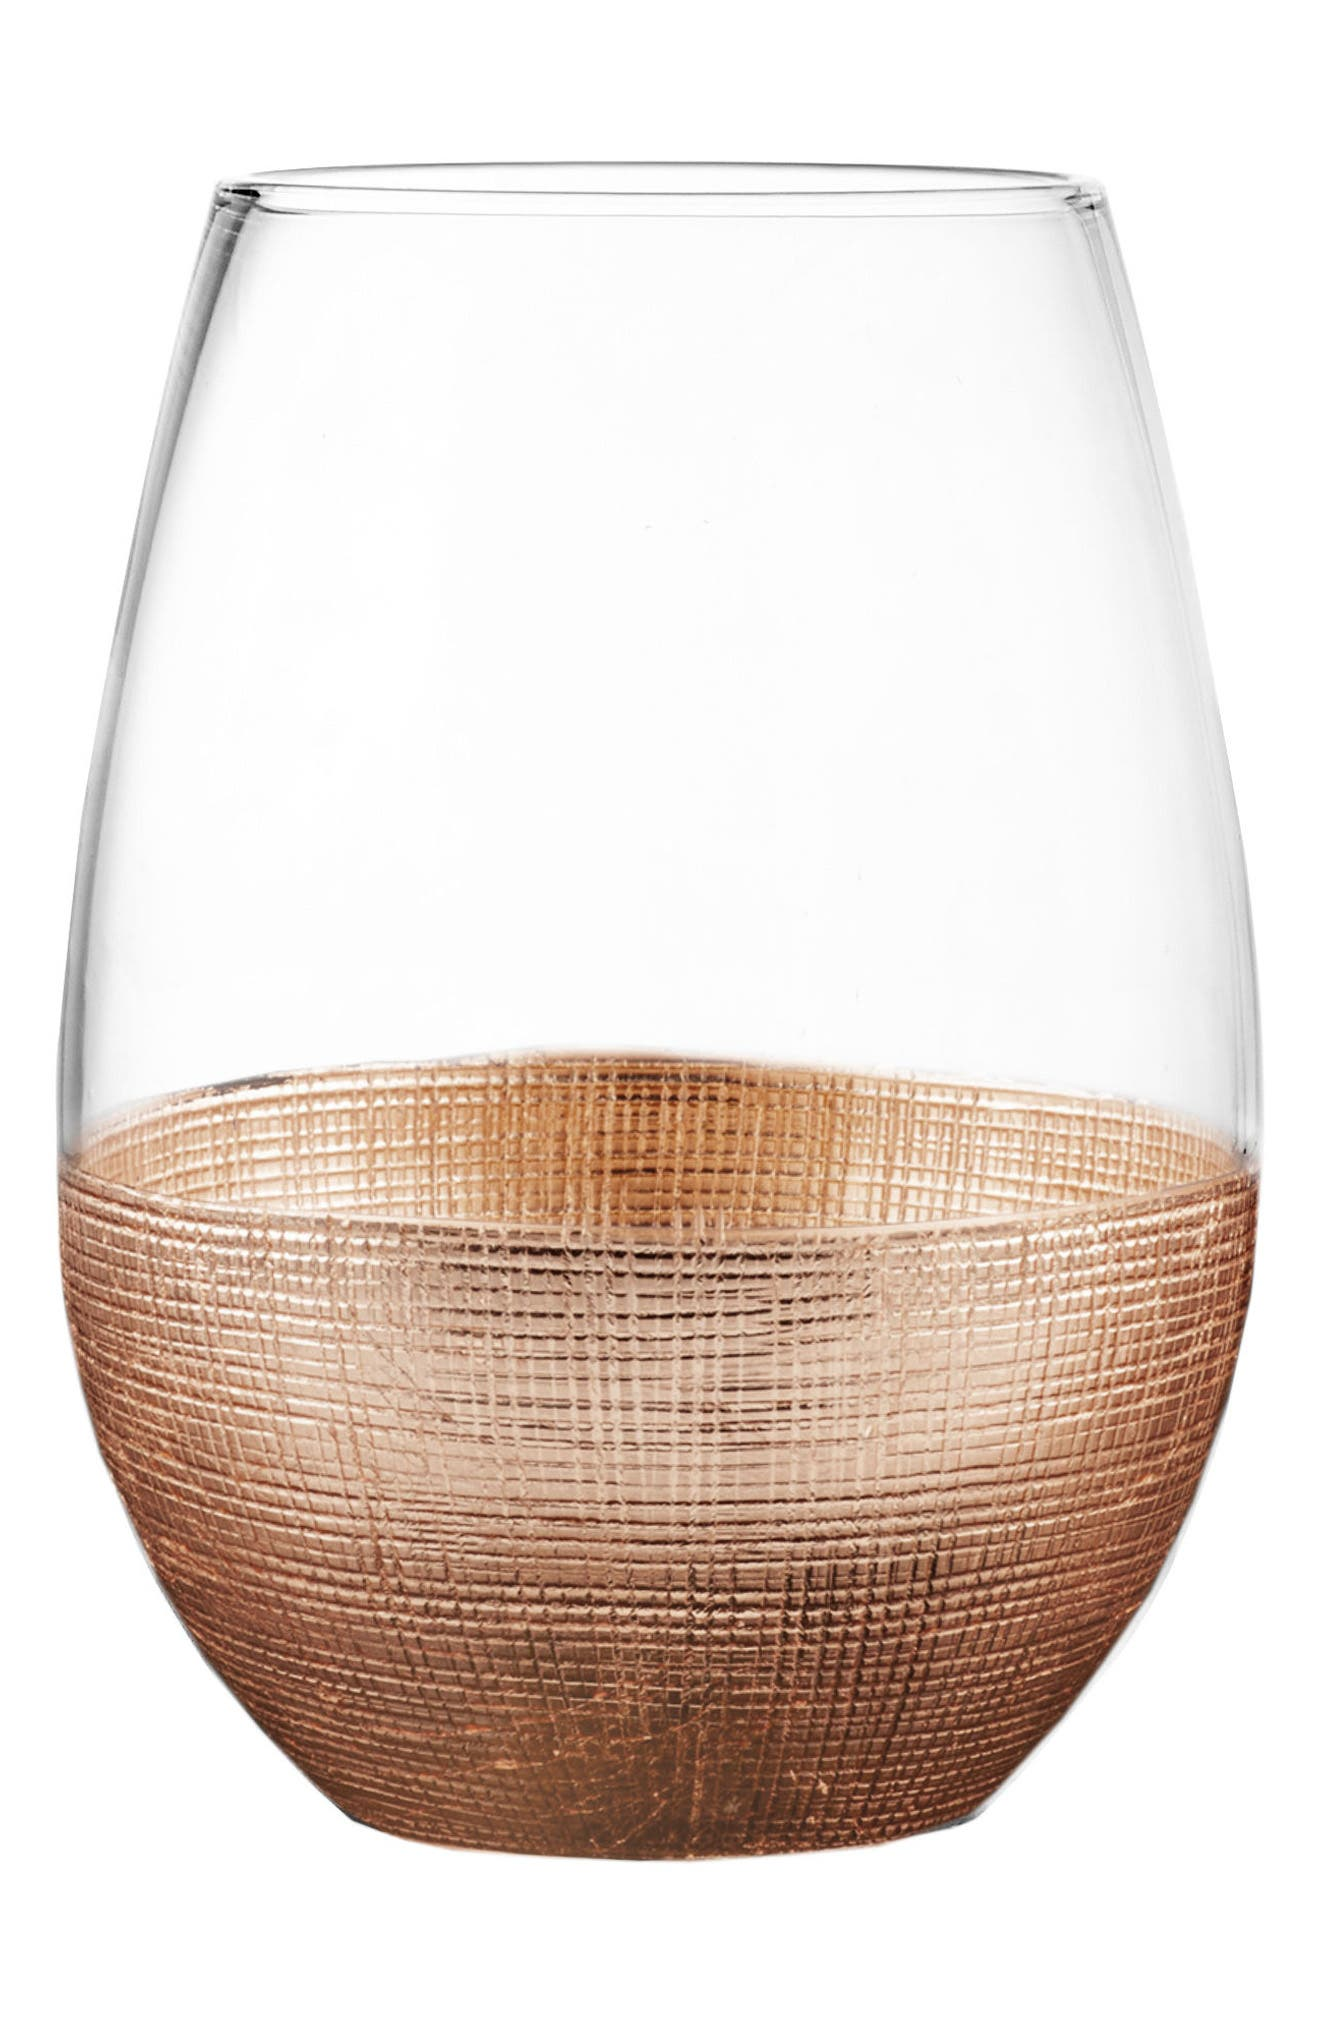 AMERICAN ATELIER Linen Set of 4 Stemless Wine Glasses, Main, color, 220